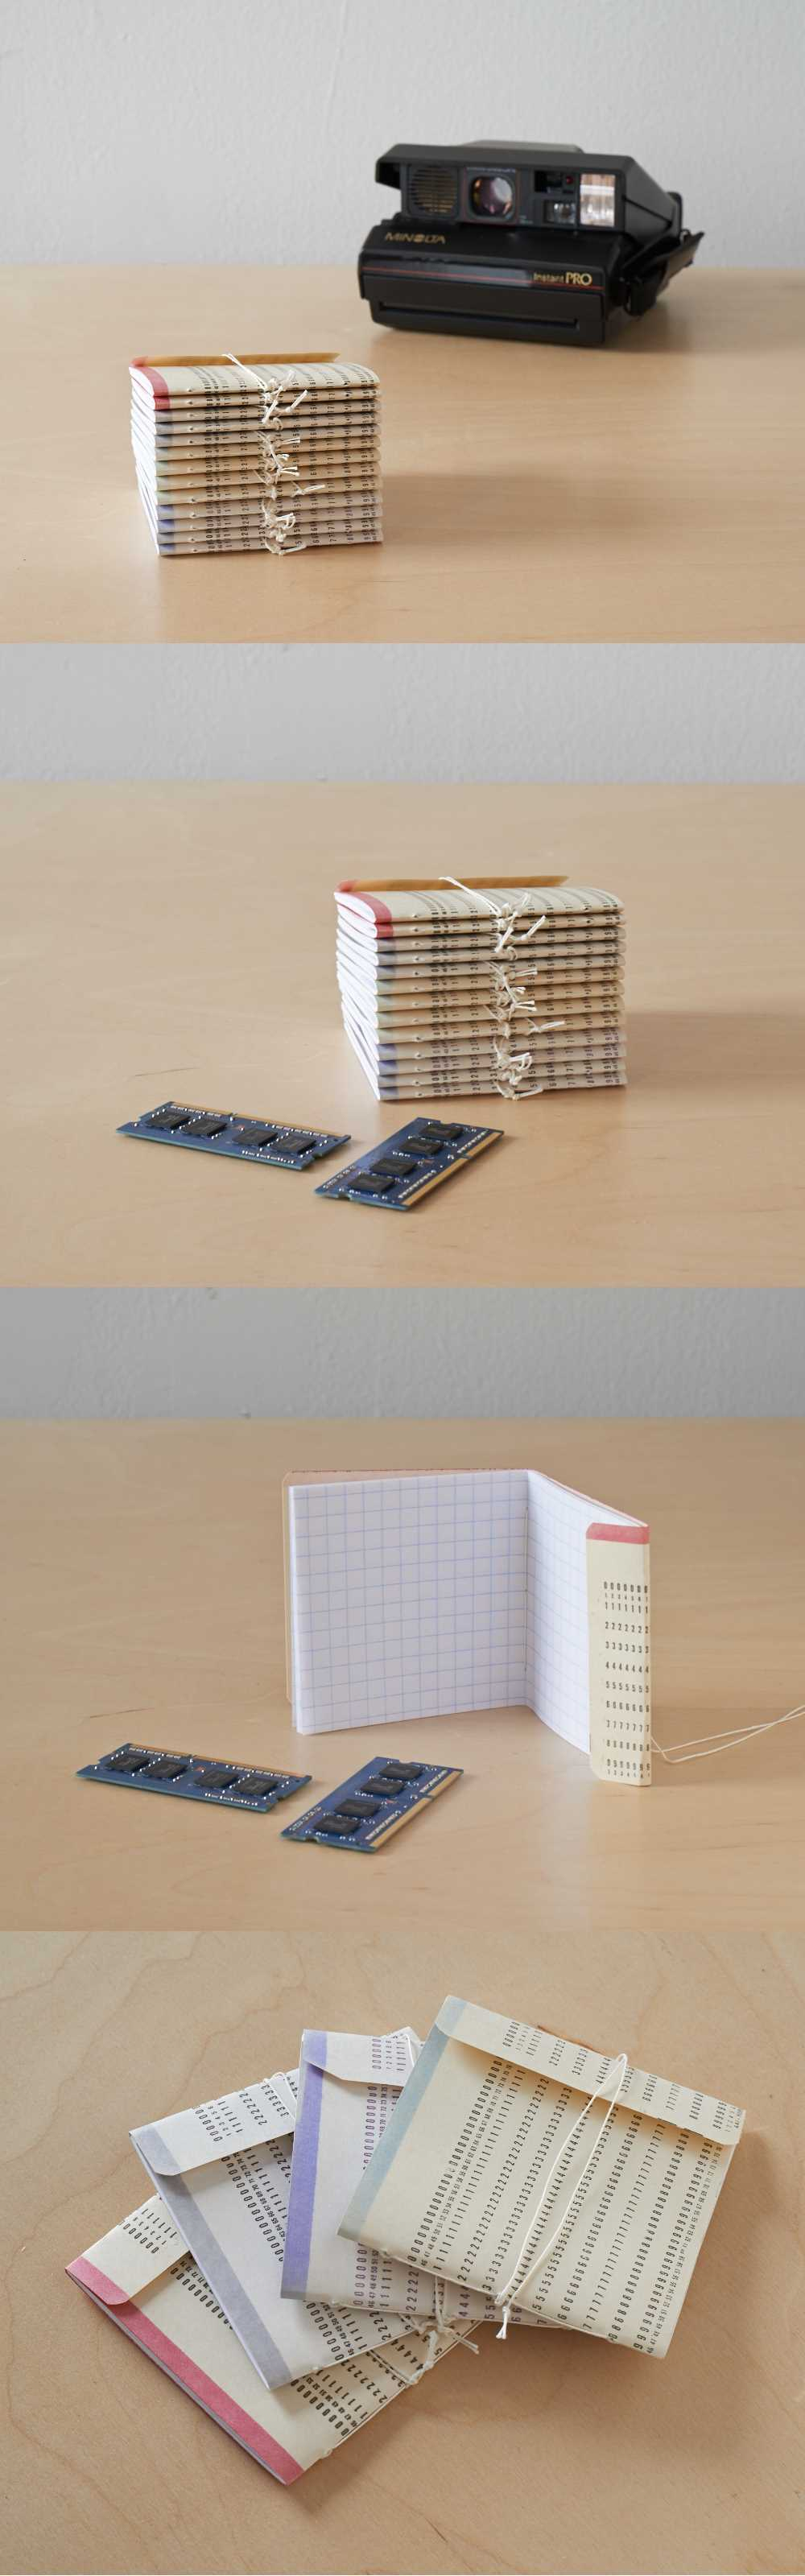 back pocket jotters from vintage ibm punch cards and graph